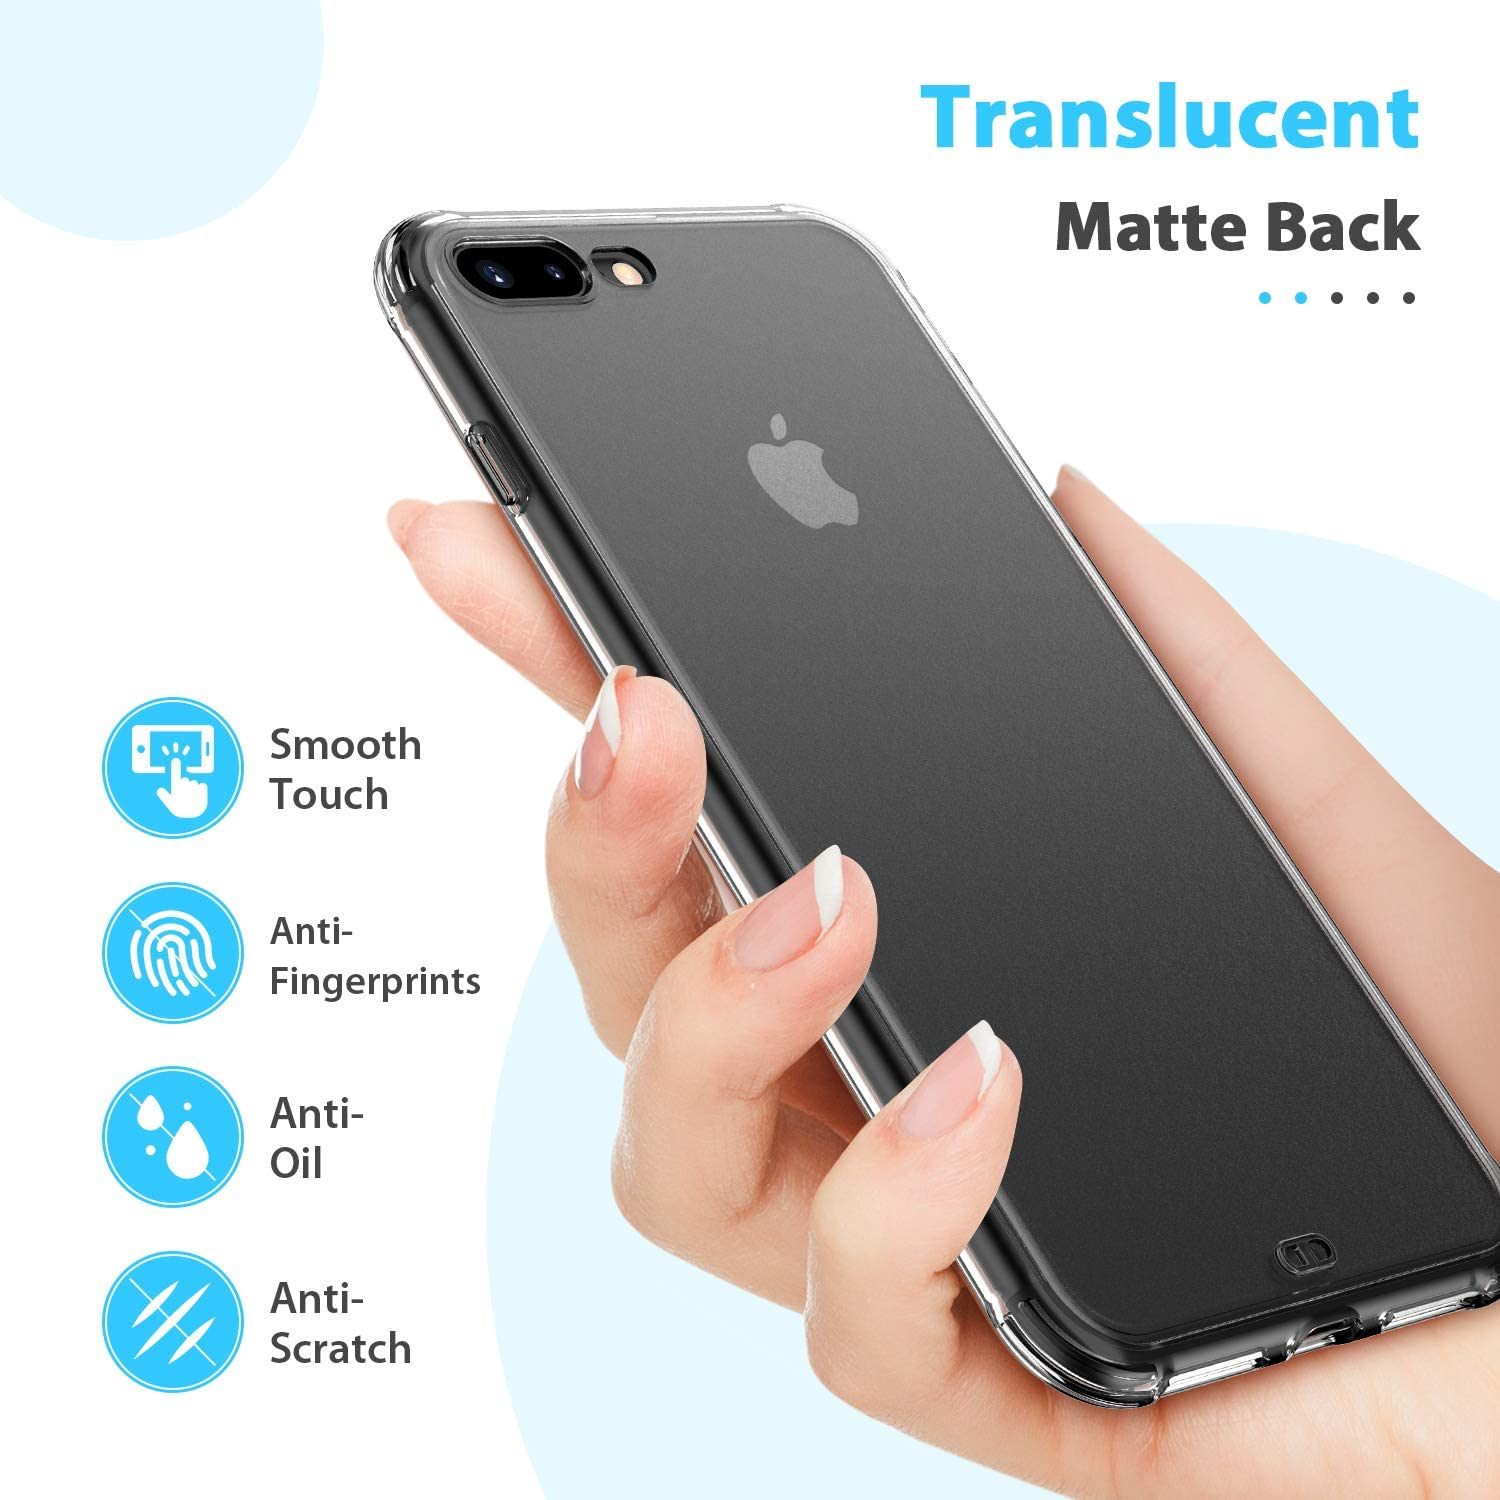 Shockproof and Anti-Drop Protection Case Designed for iPhone 11 ORIbox Case for iPhone 11 Translucent Matte case with Soft Black Edges